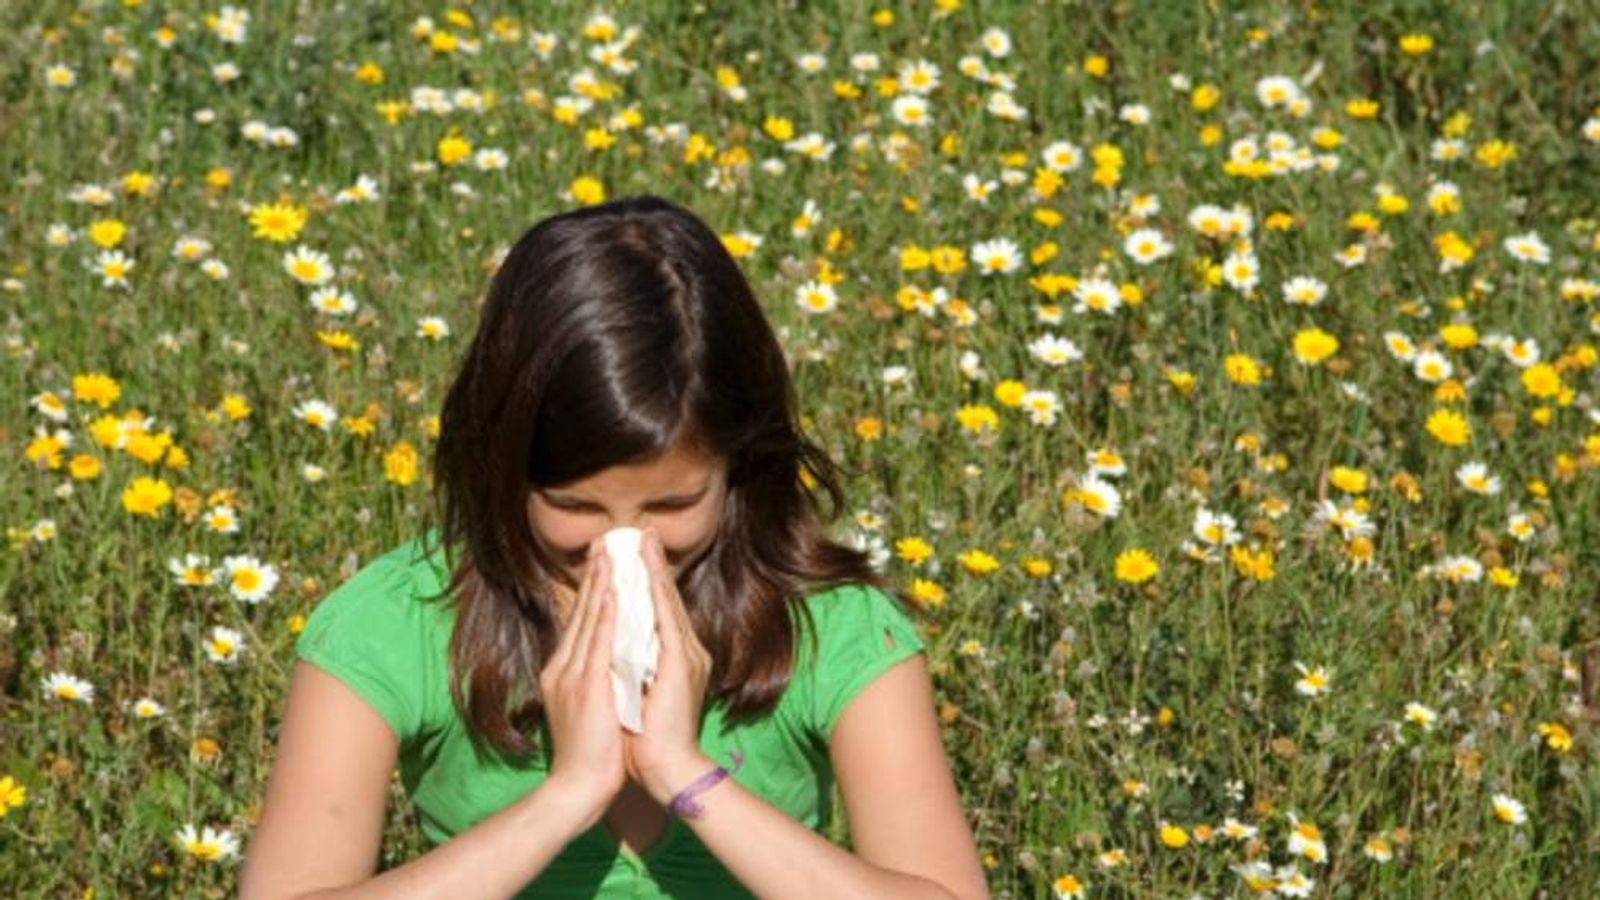 Hayfever affects millions in the UK.